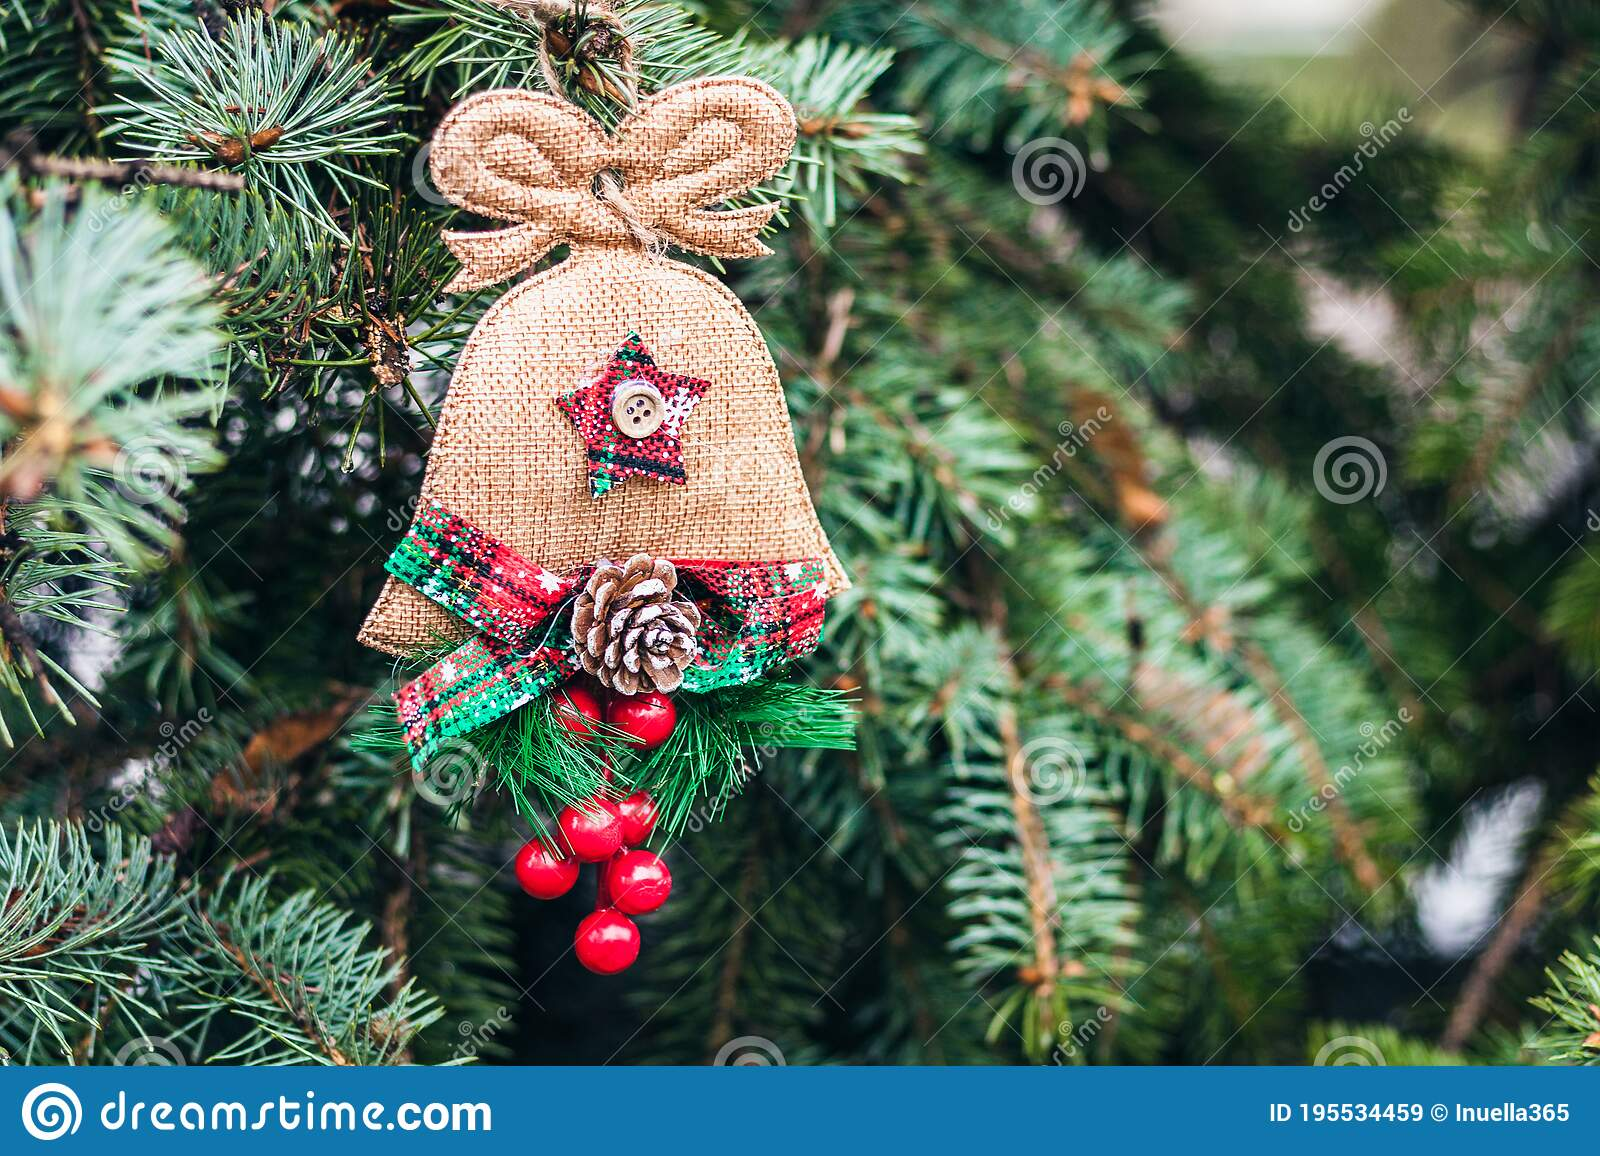 Green Christmas Tree Branch With A Homemade Burlap Toy New Year Background With Copy Space For Text Stock Image Image Of Plant Festive 195534459